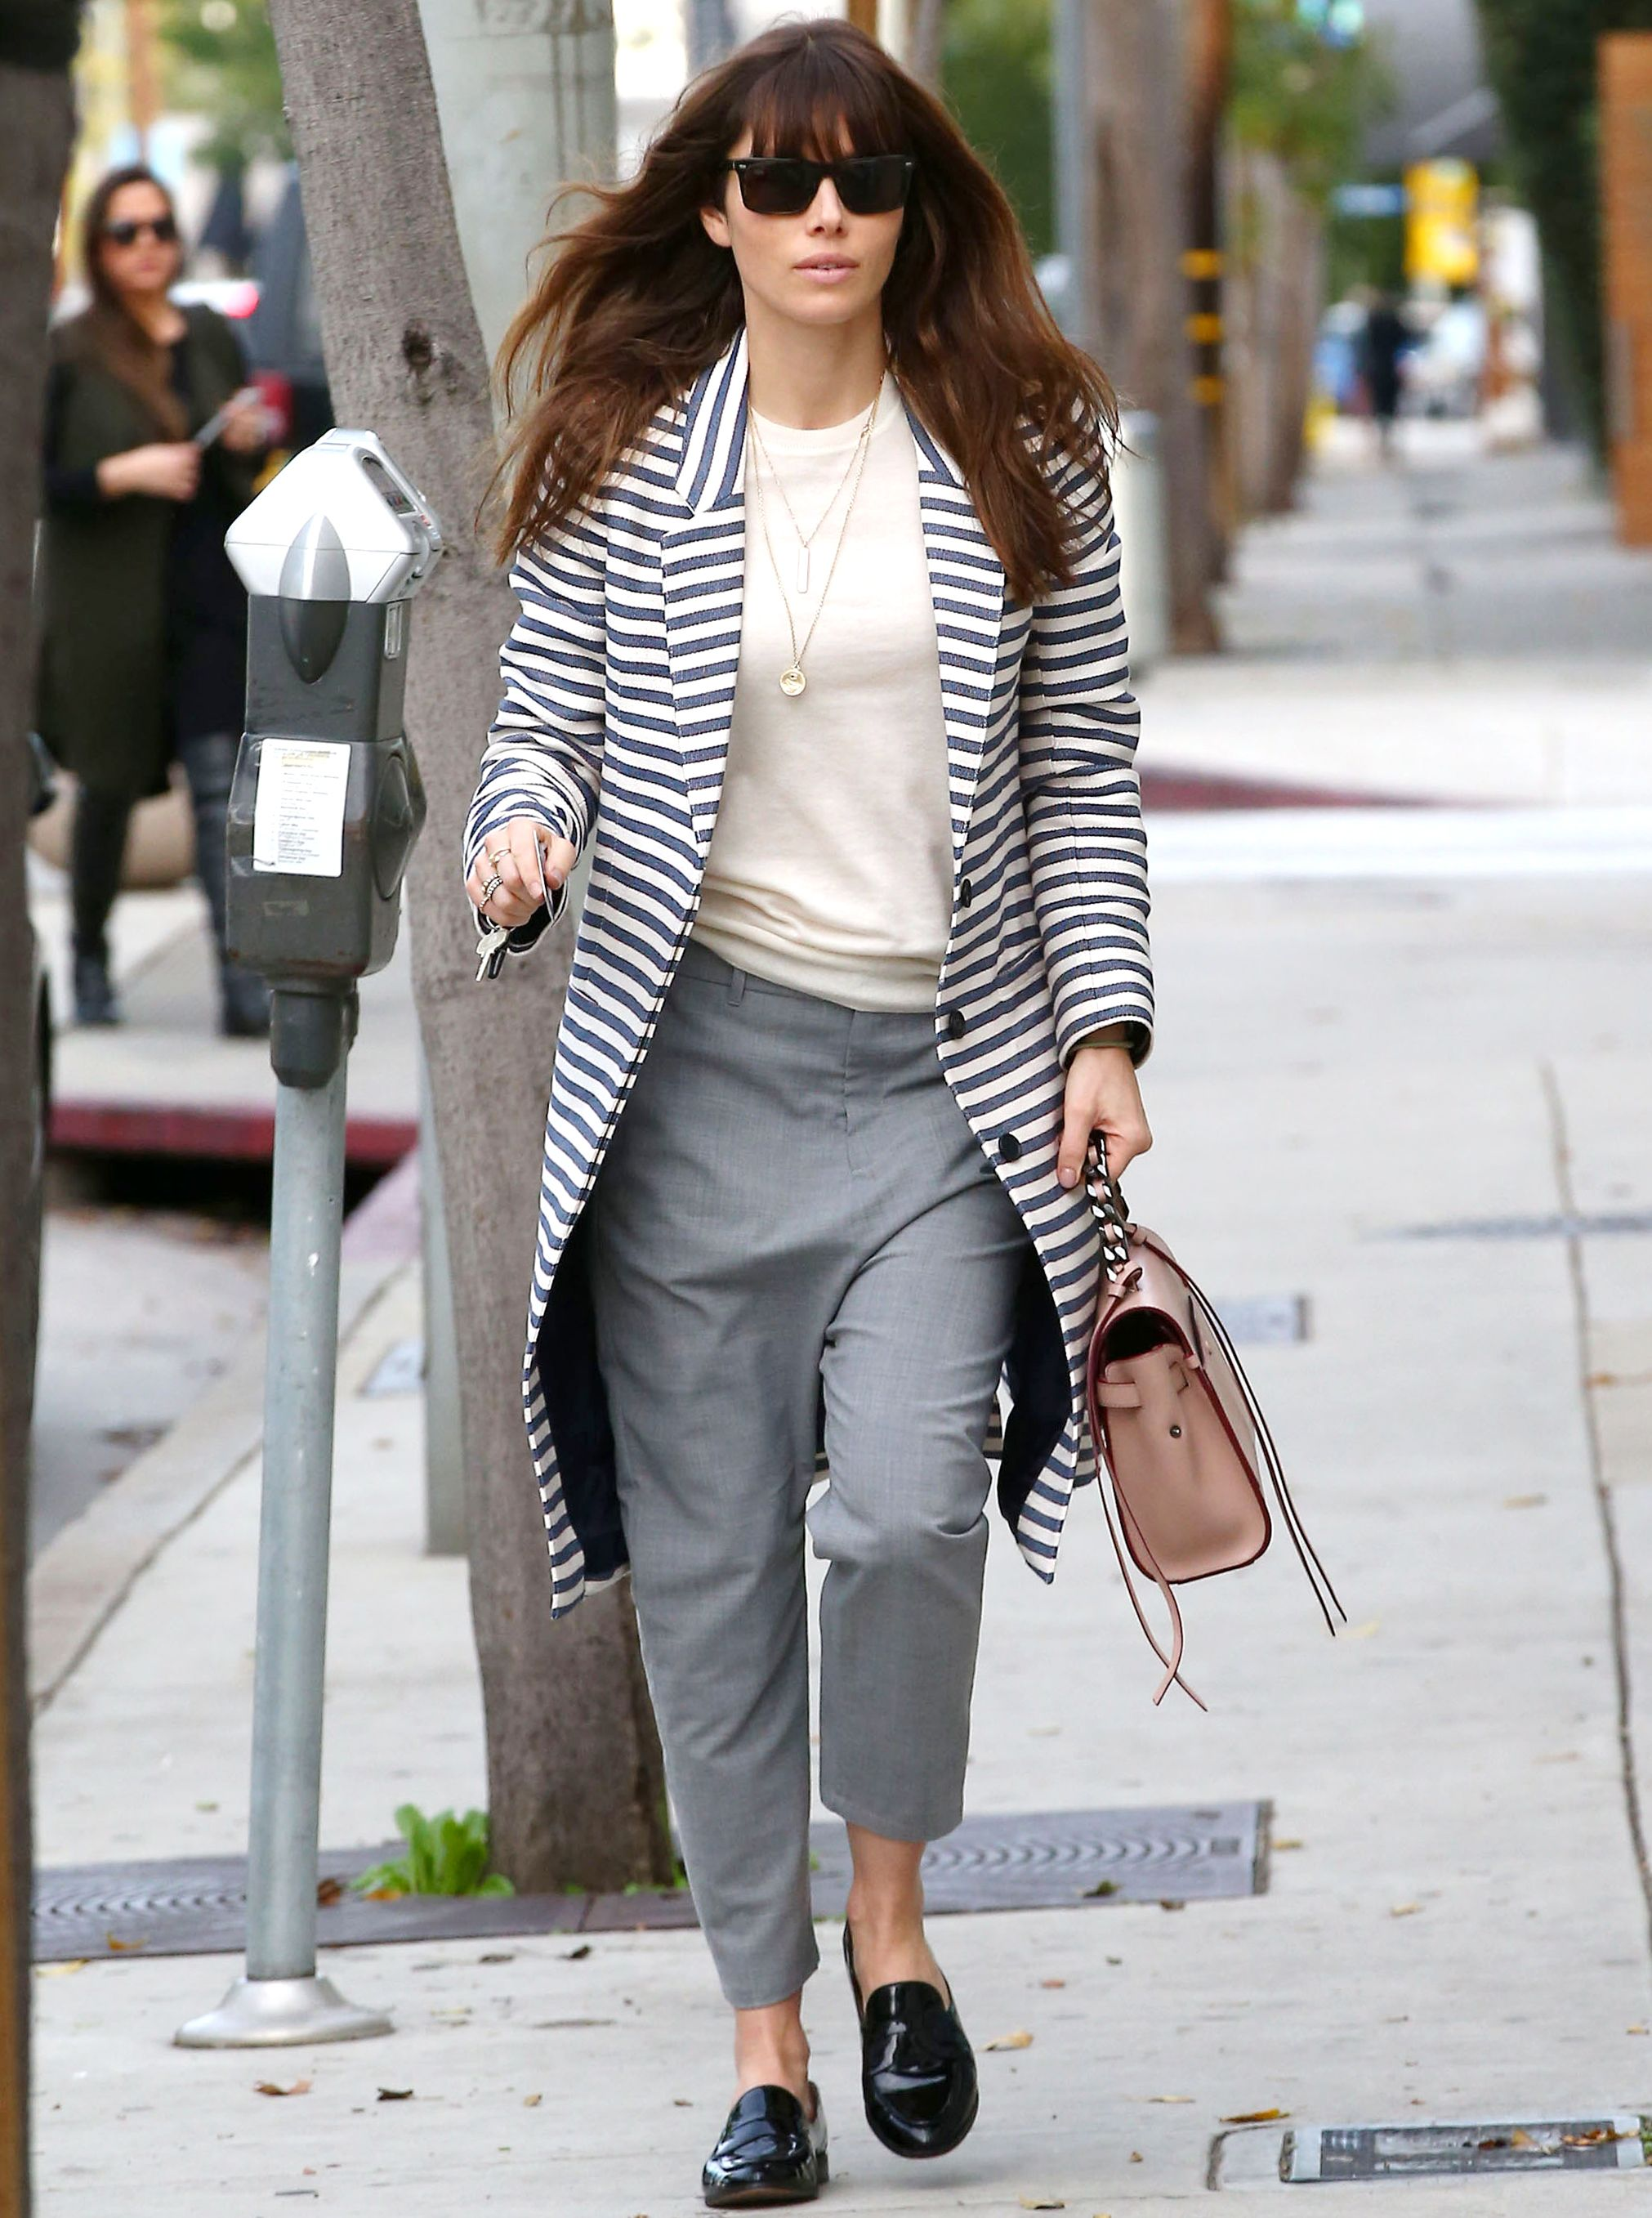 ae5052054d0 Smart Yet Cute Spring Outfits For School. You ll Want to Copy Jessica  Biel s Working Mom Style